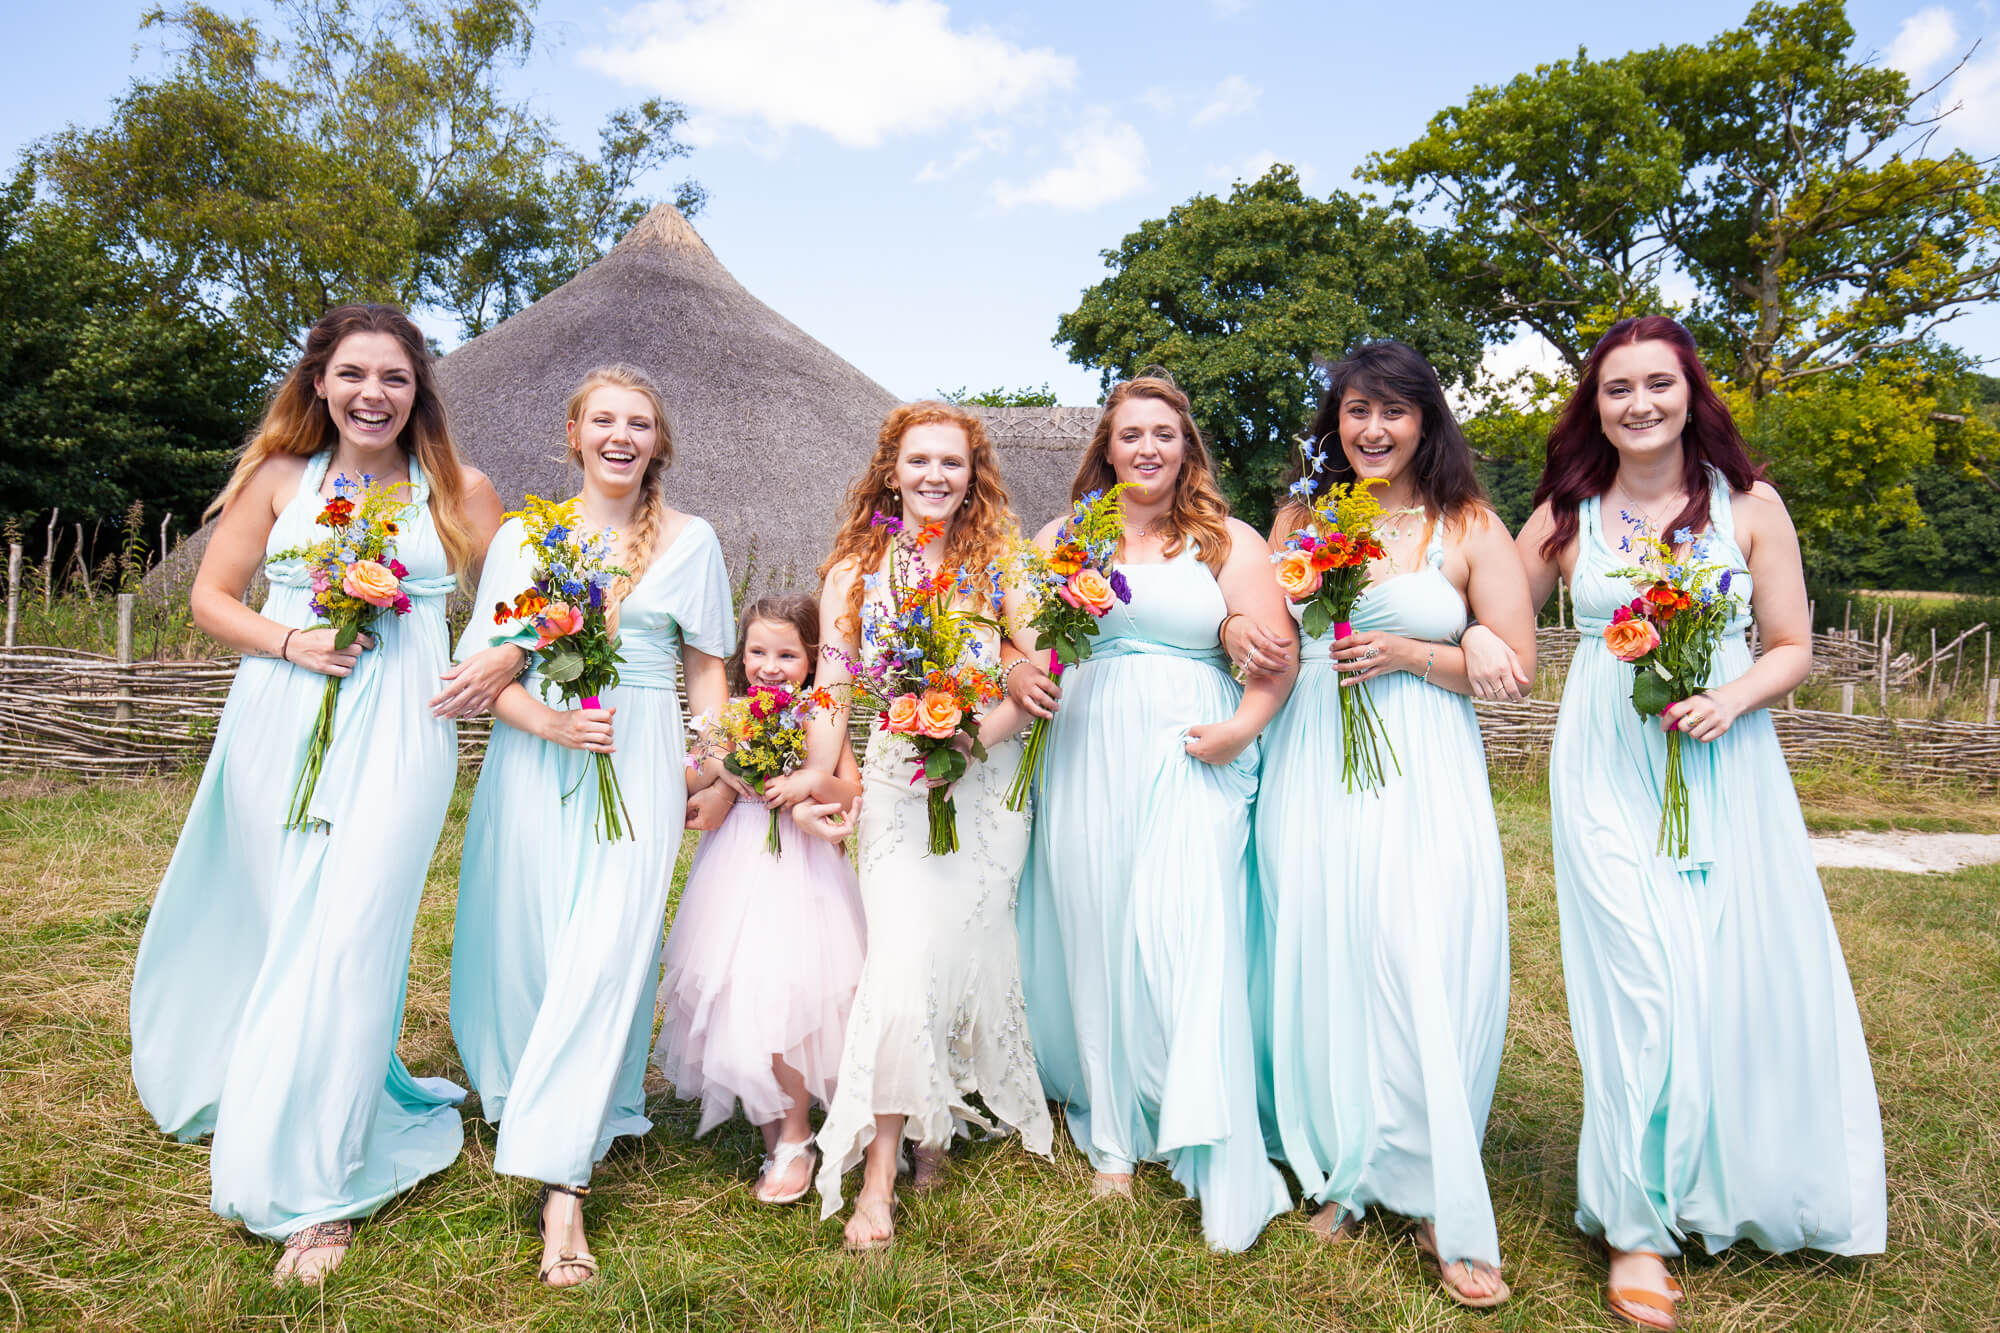 Wedding photography, bridesmaids